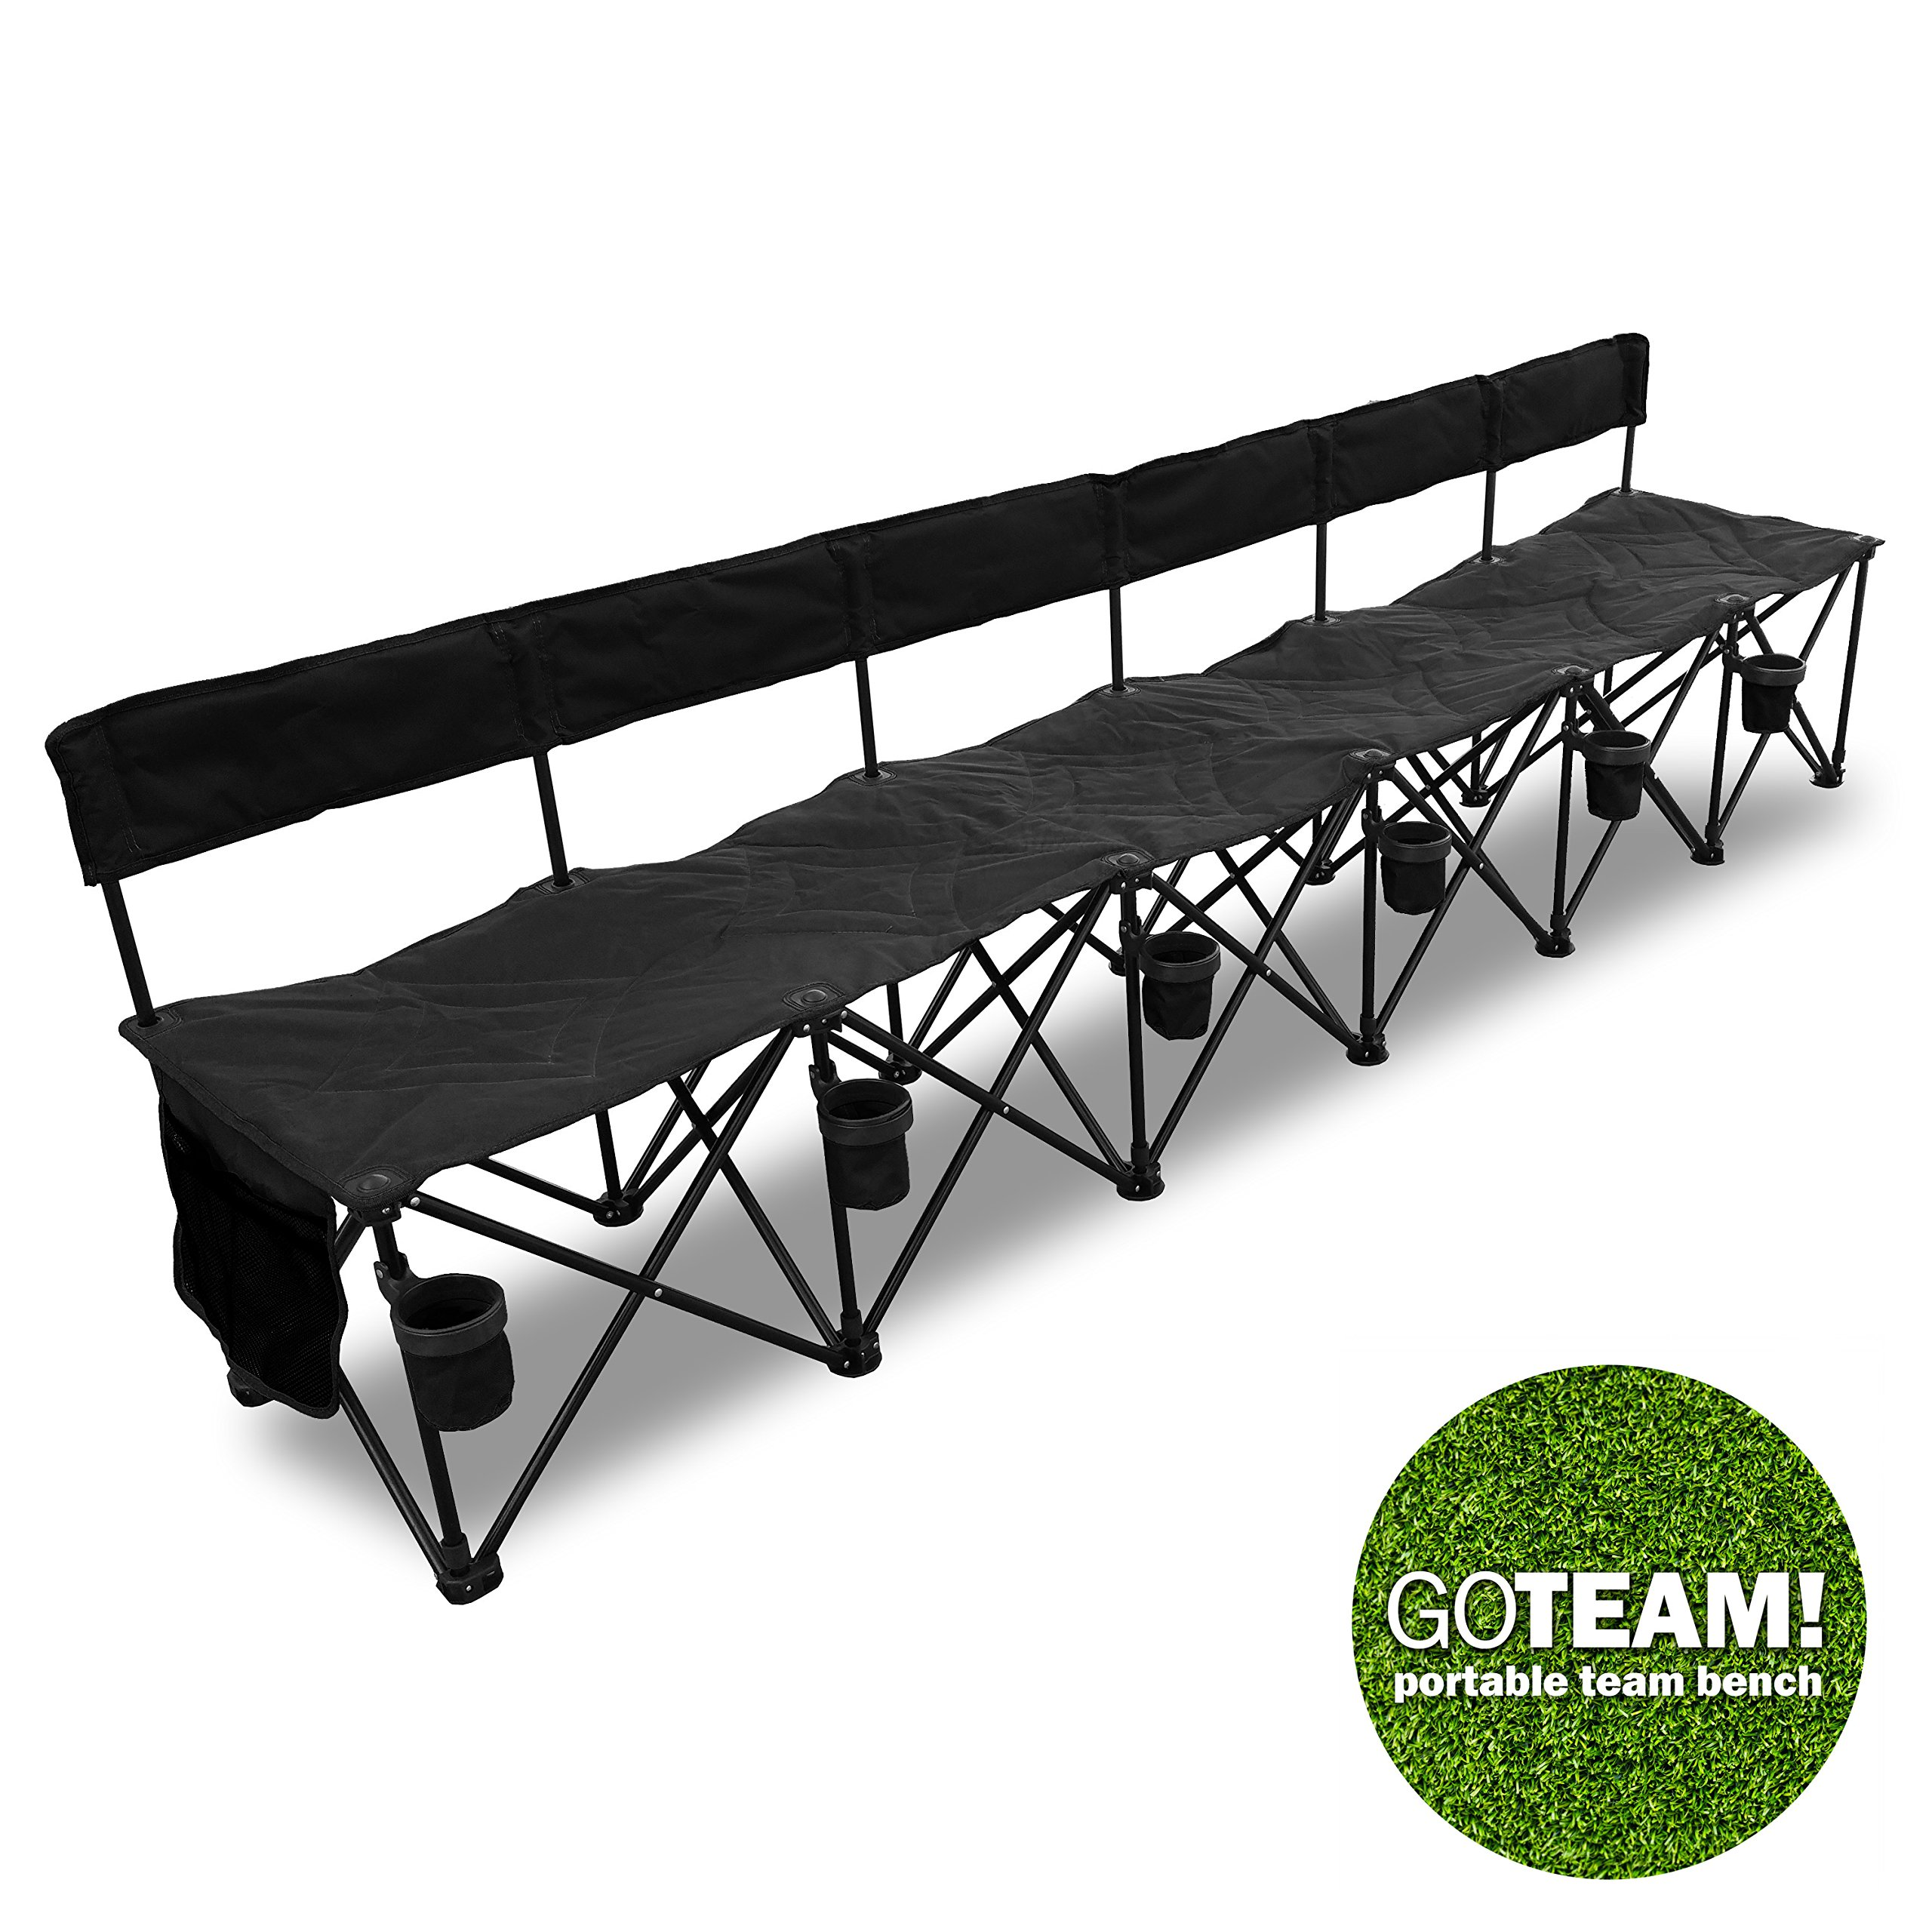 GoTeam! Pro 6 Seat Portable Folding Team Bench - Black by GoTeam